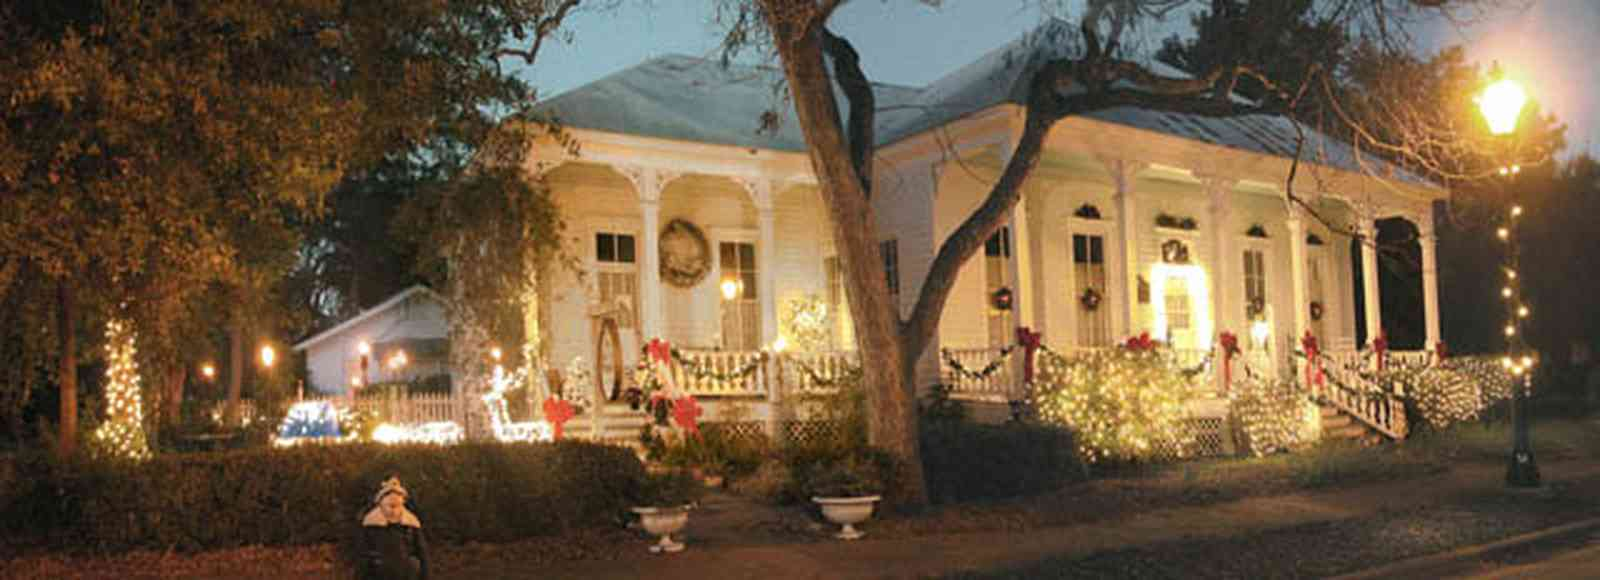 Pensacola:-Seville-Historic-District:-434-East-Zaragoza-Street_04.jpg:  christmas decoration, garland, festive, oak tree, front porch, four-square georgian architecture, wreath, fountain, pyramid roof, tin roof, gingerbread trim, street light,, underground power, brick sidewalk